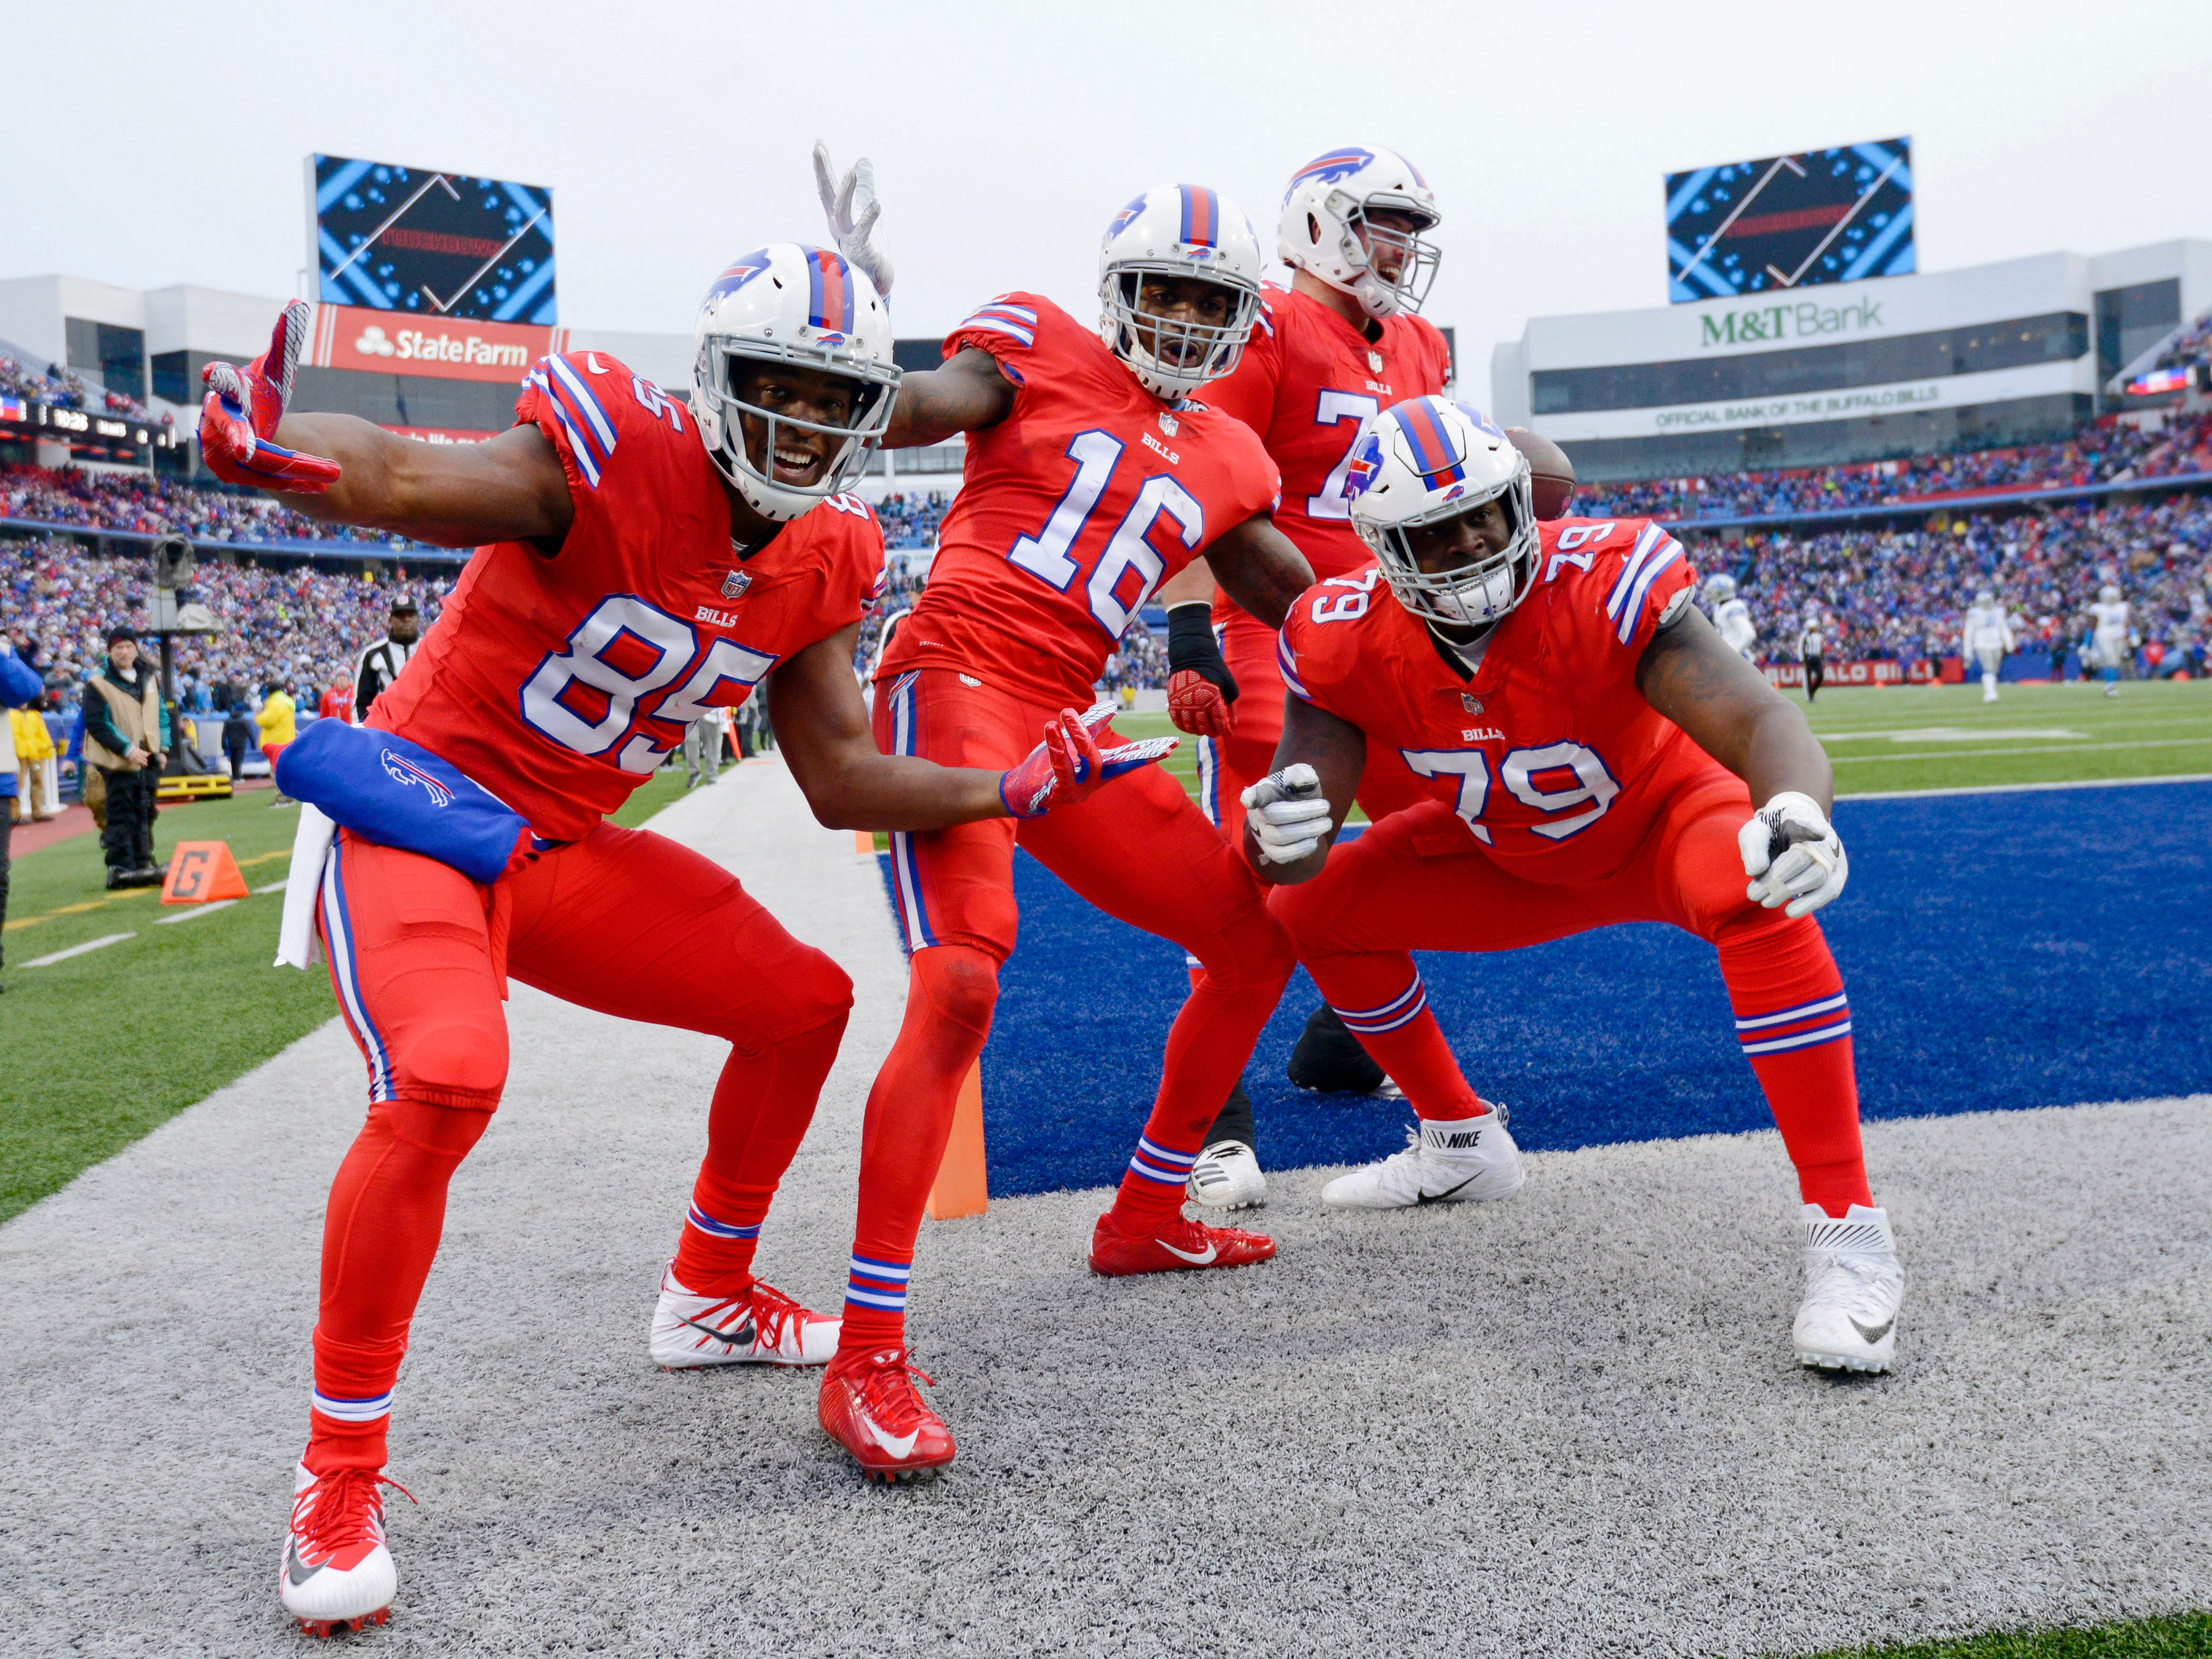 Buffalo Bills wide receiver Robert Foster (16) celebrates his touchdown with teammates Charles Clay (85) and Jordan Mills (79) in the fourth quarter against the Detroit Lions at New Era Field.